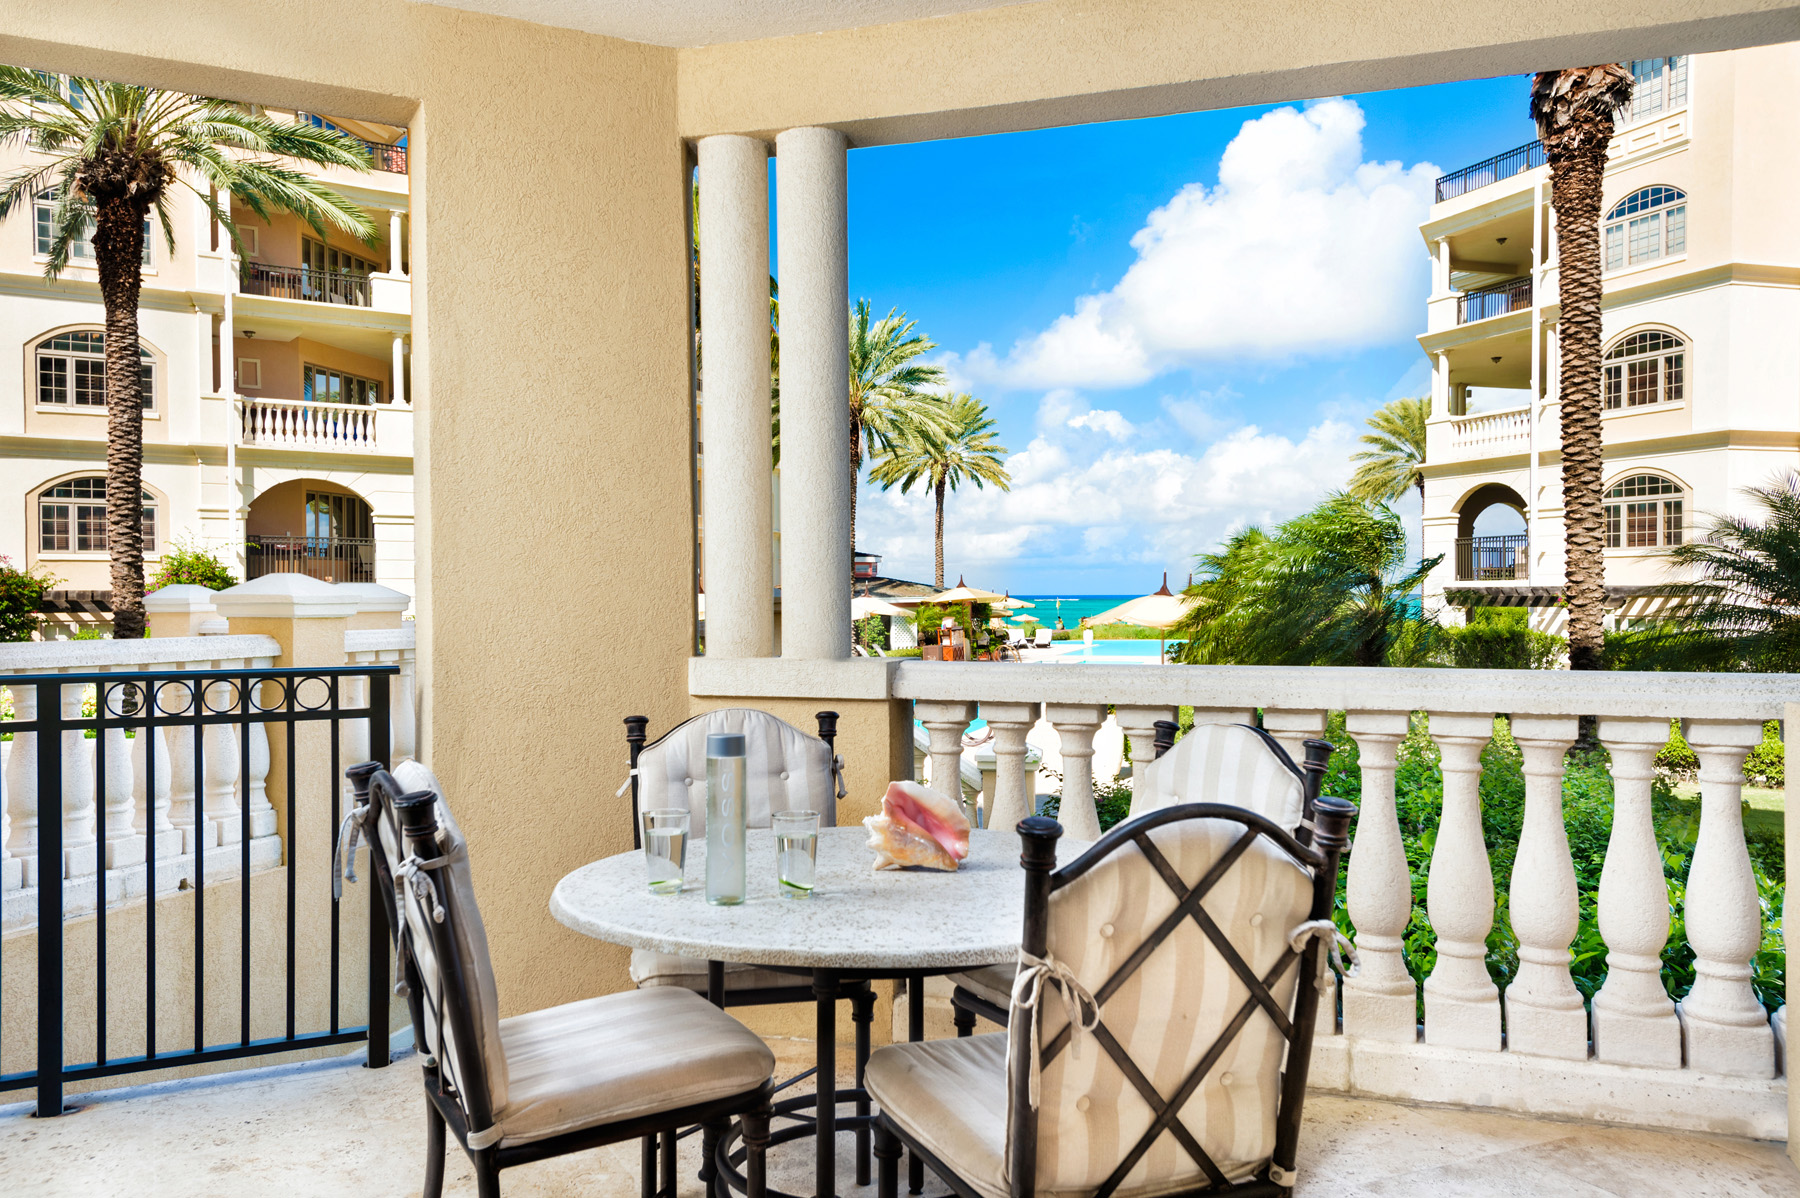 Condominium for Sale at The Somerset - Suite E103 Oceanview Grace Bay, Providenciales, TCI BWI Turks And Caicos Islands